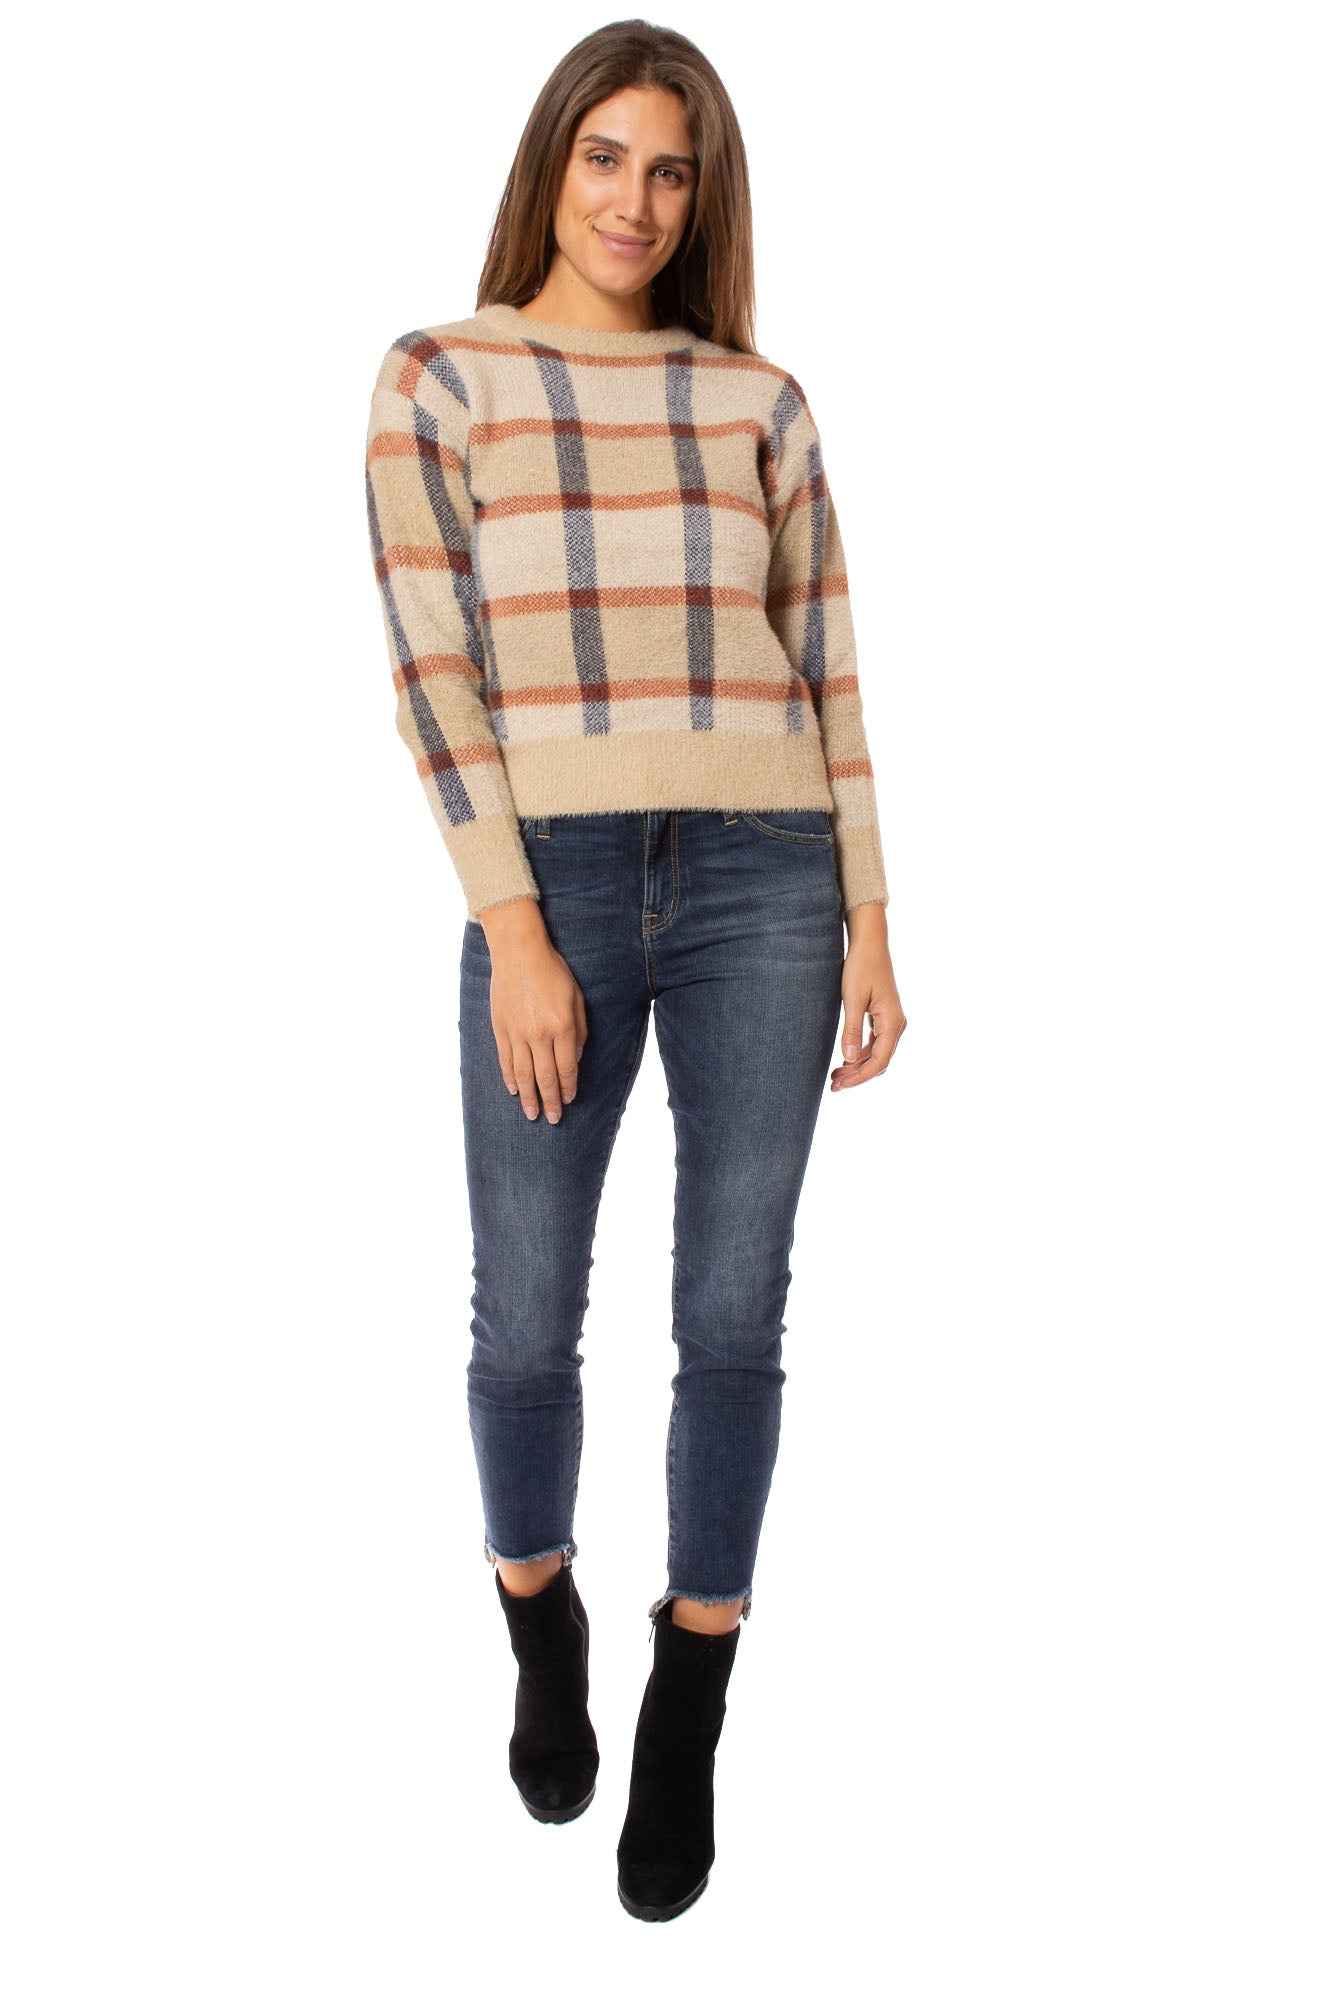 To The Loyal - Checkered Sweater (TMK1108, Tan)